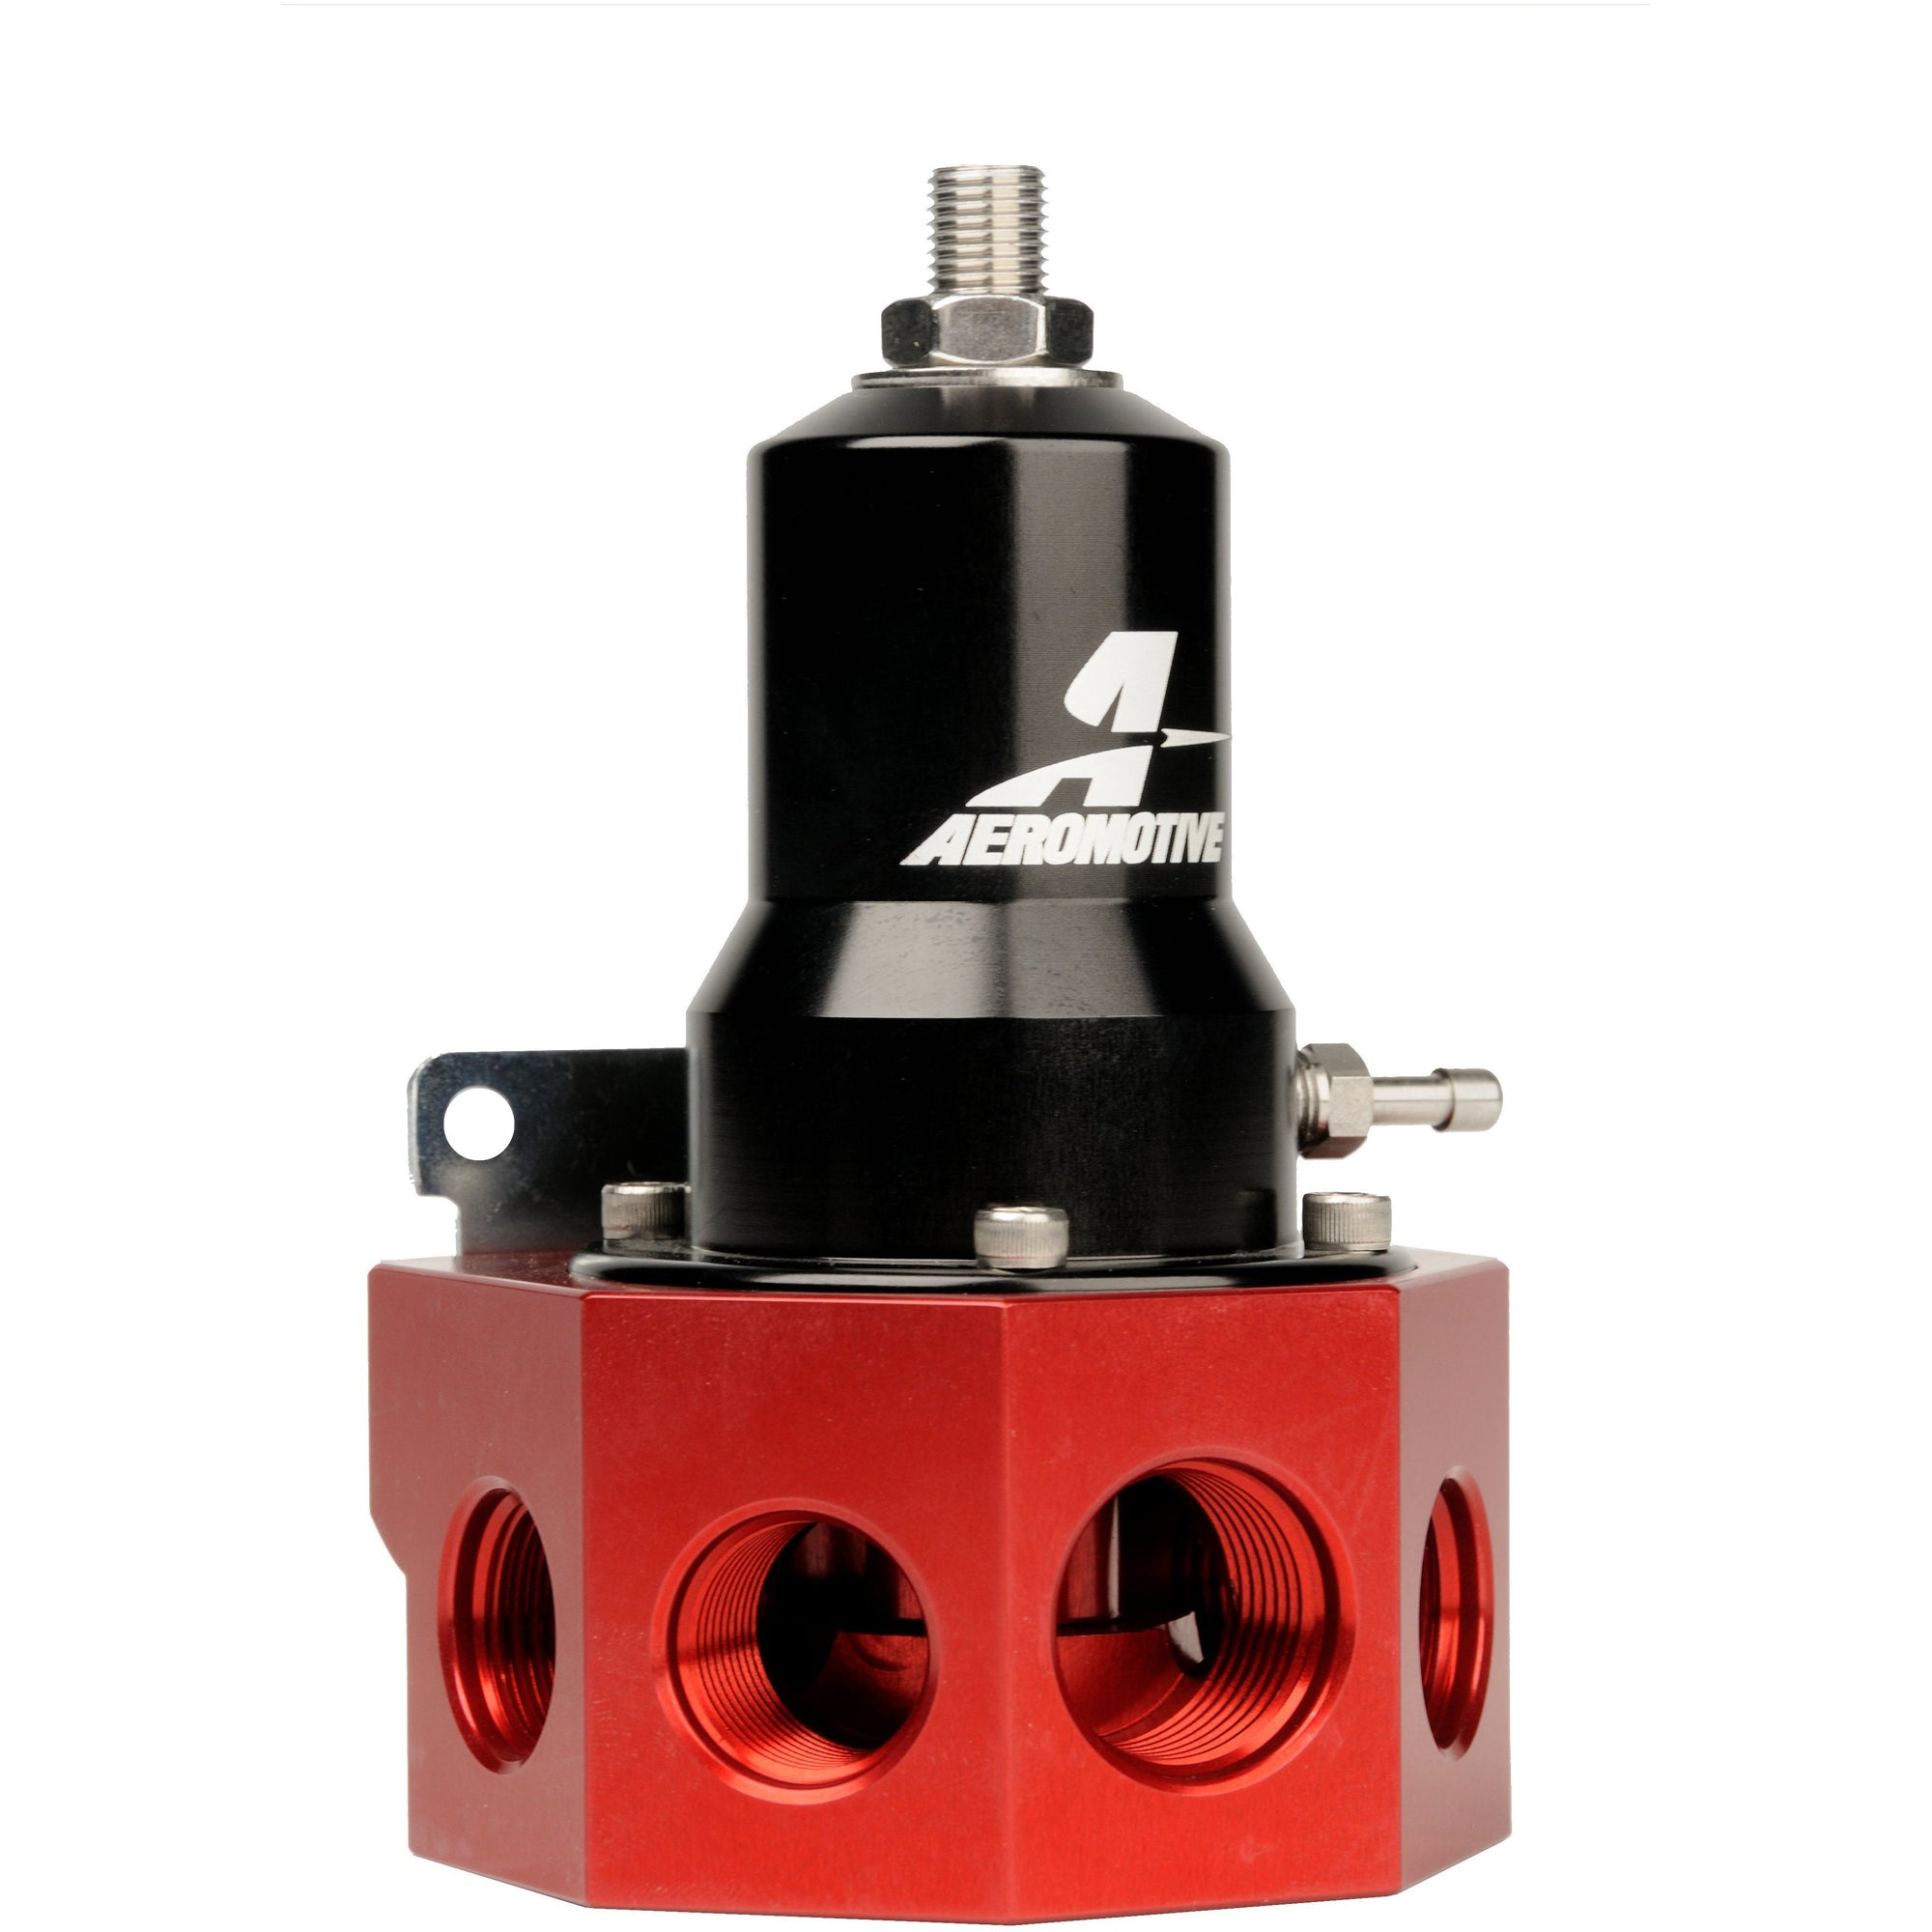 Aeromotive Extreme Flow EFI Regulator 7-26 GPM 4 Port 13133-Aeromotive-Motion Raceworks